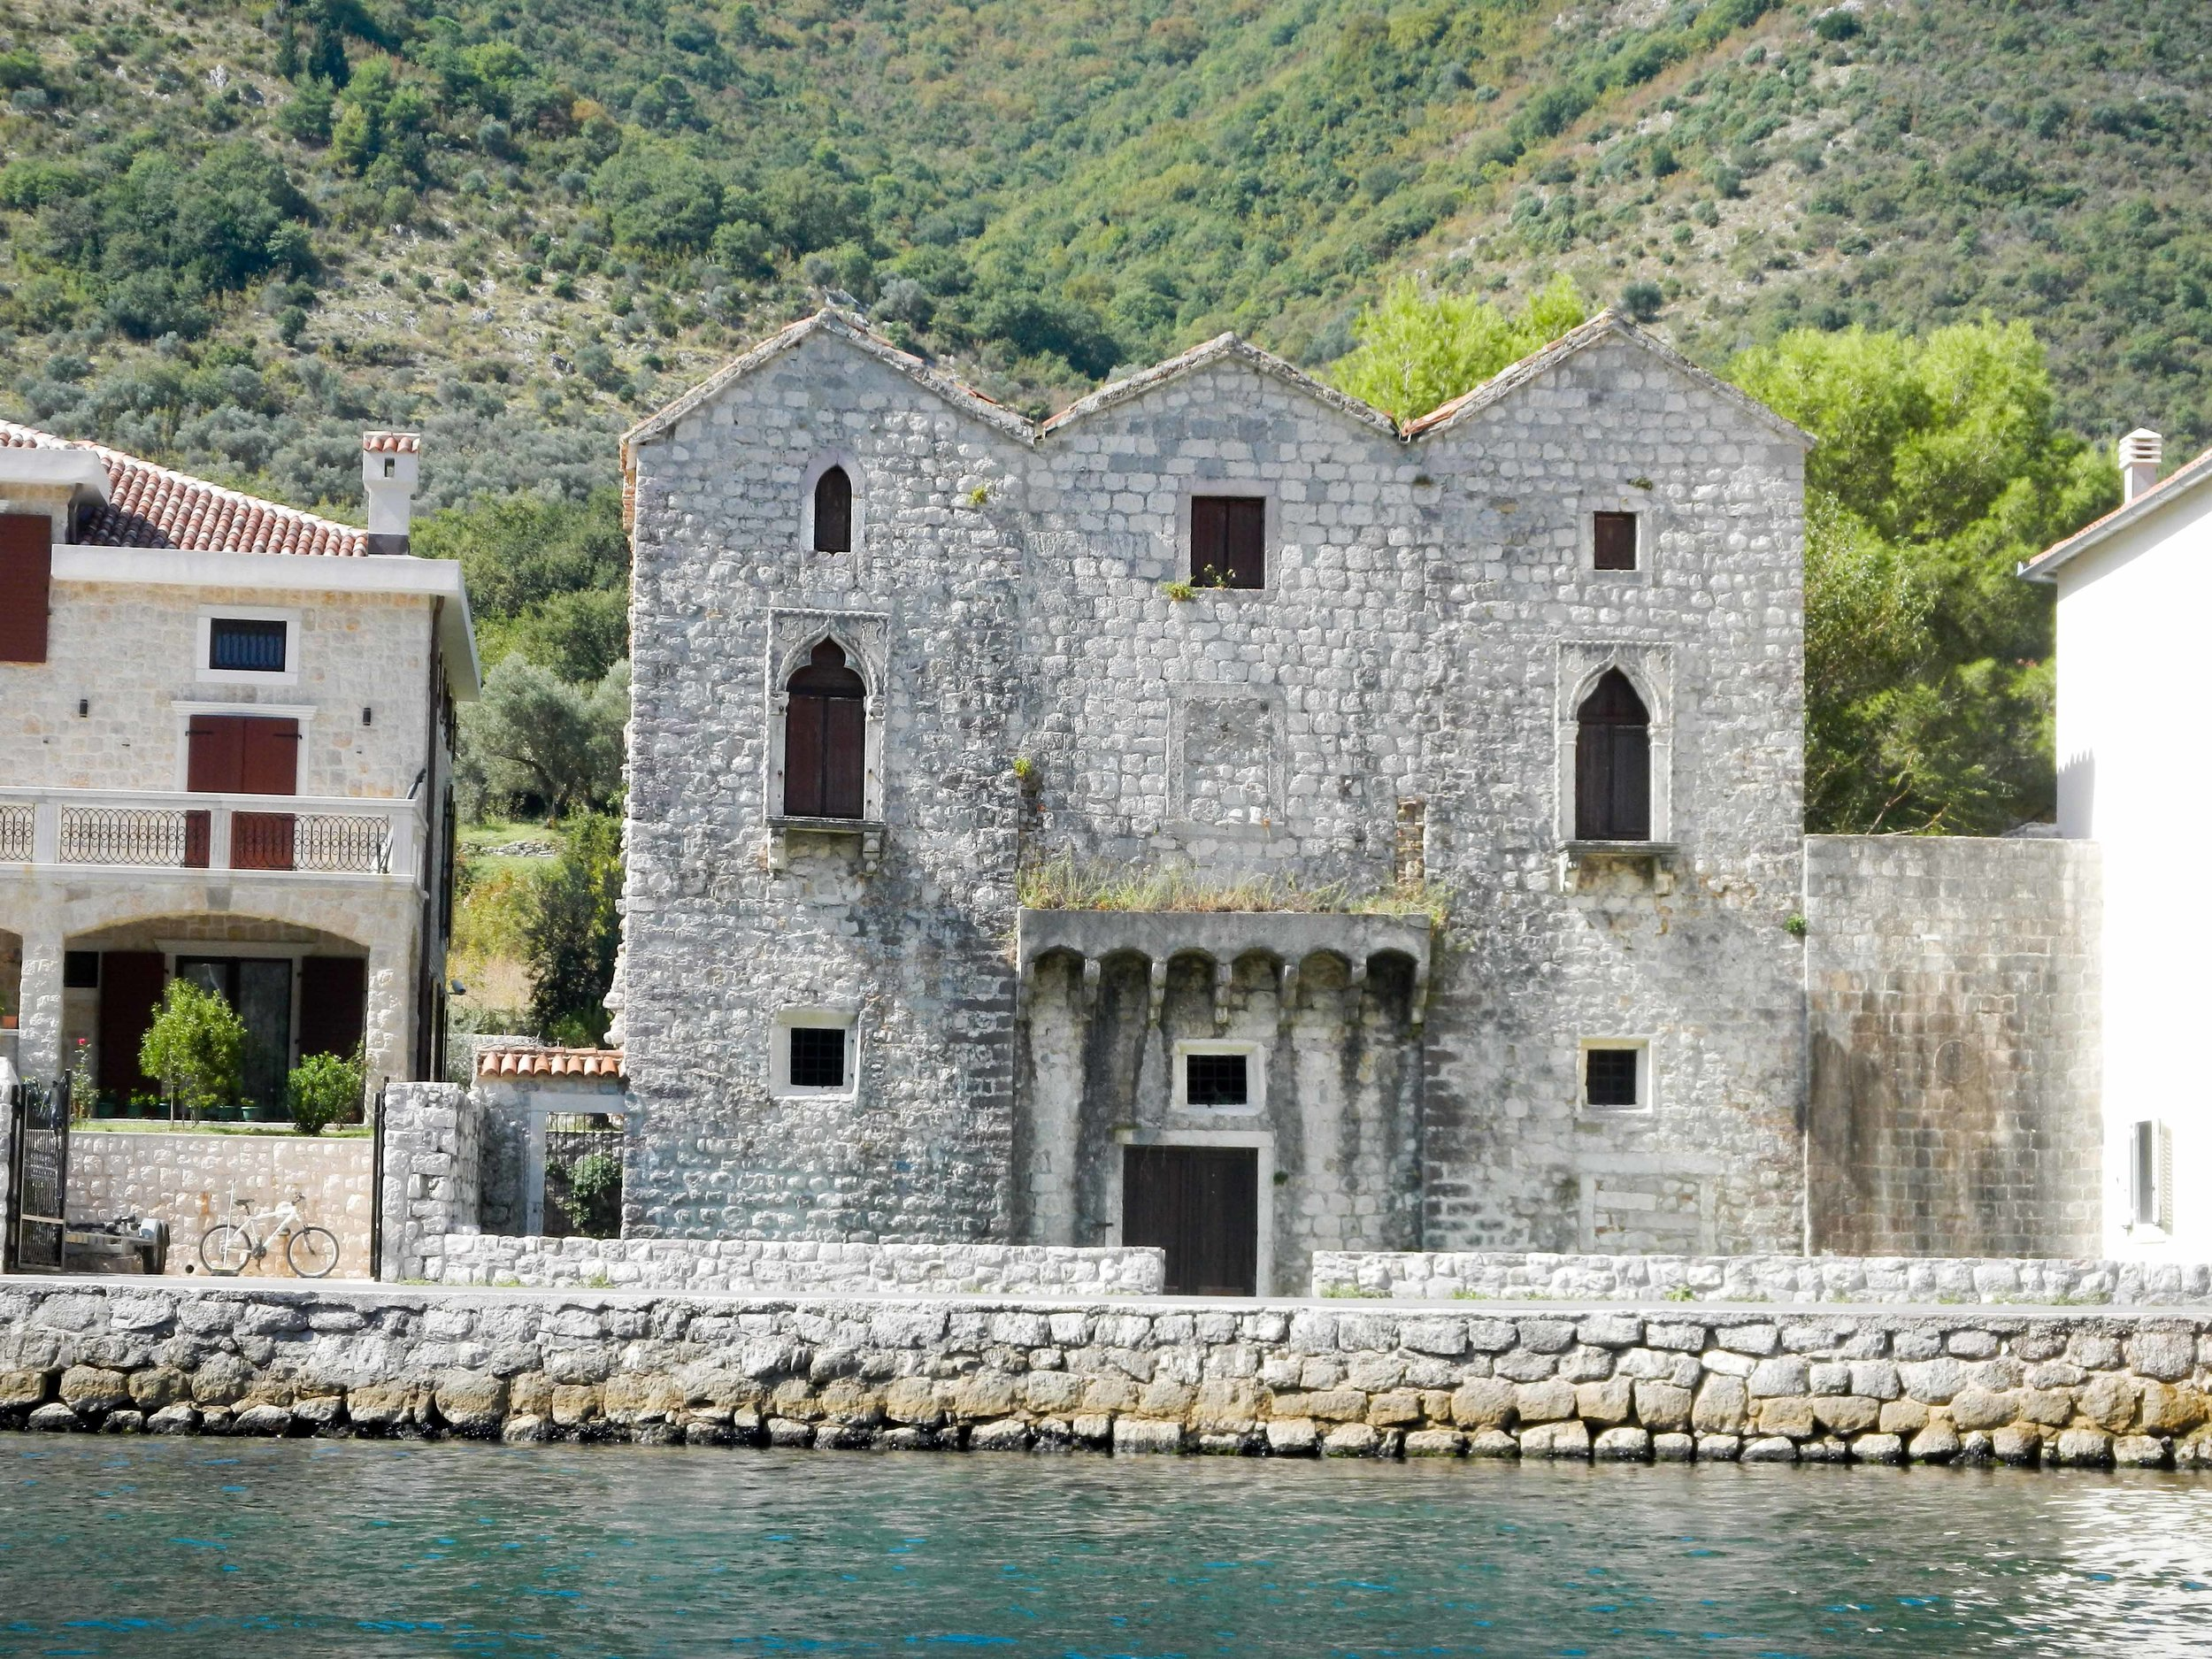 Old house from kayak, Kotor, Montenegro